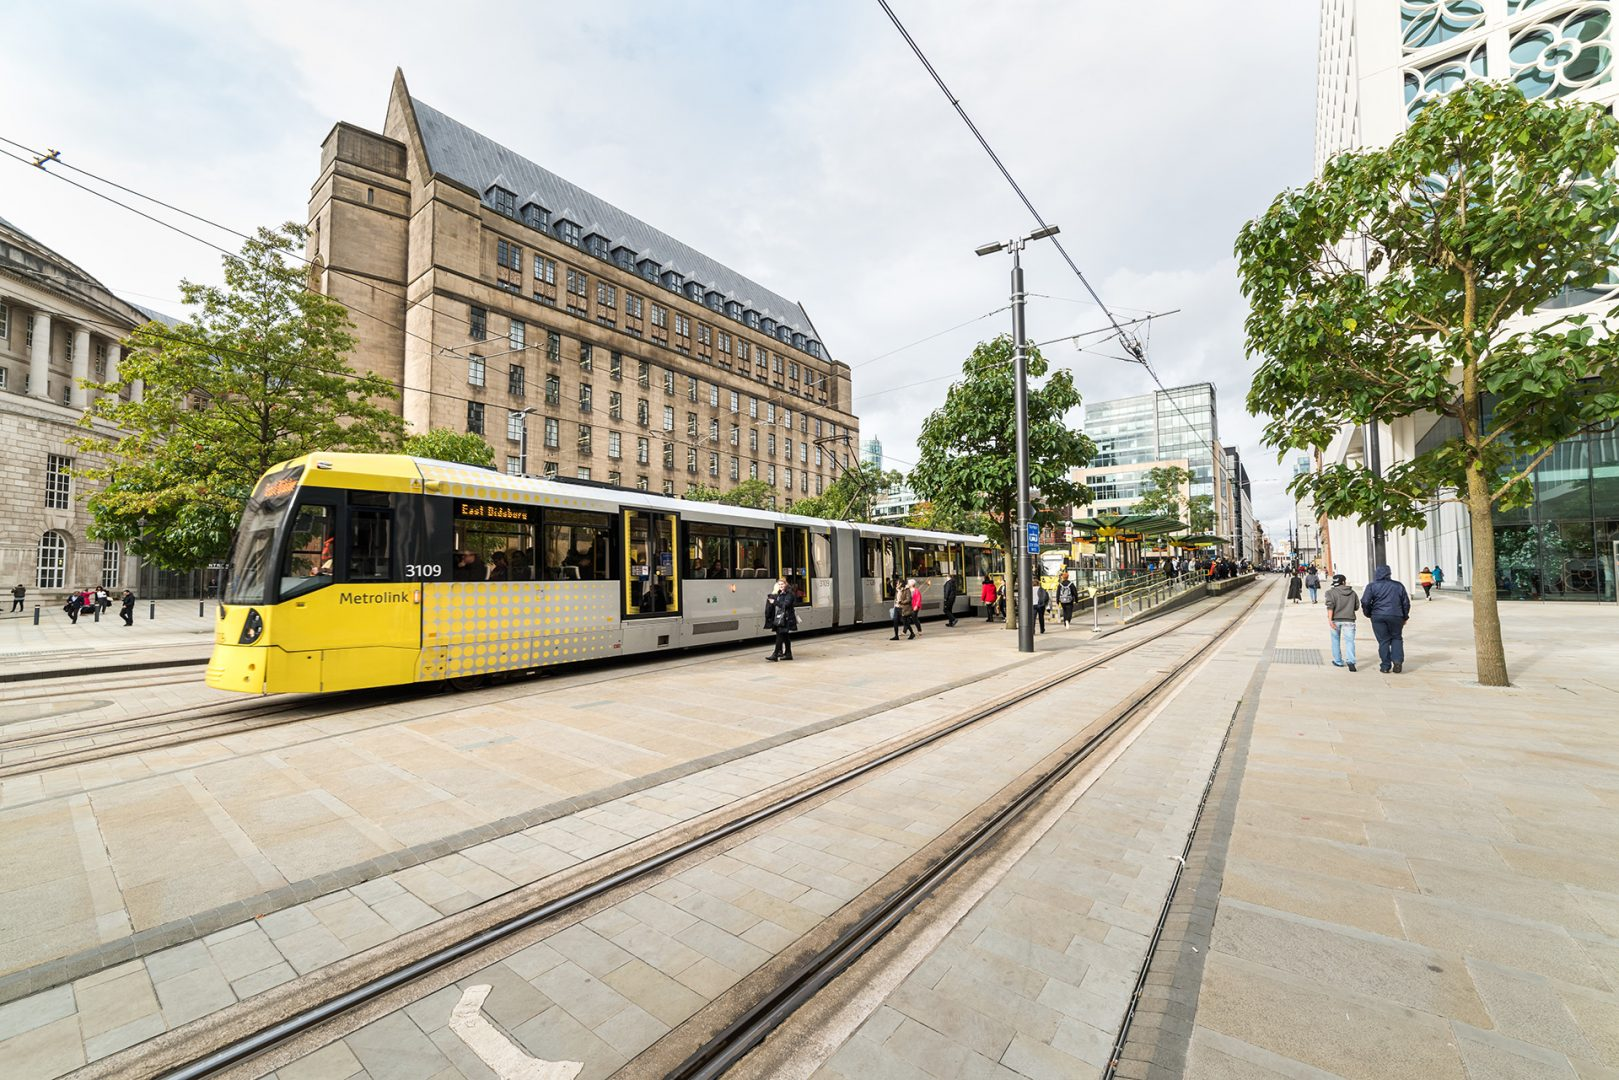 Tram in St Peter's Square, Manchester